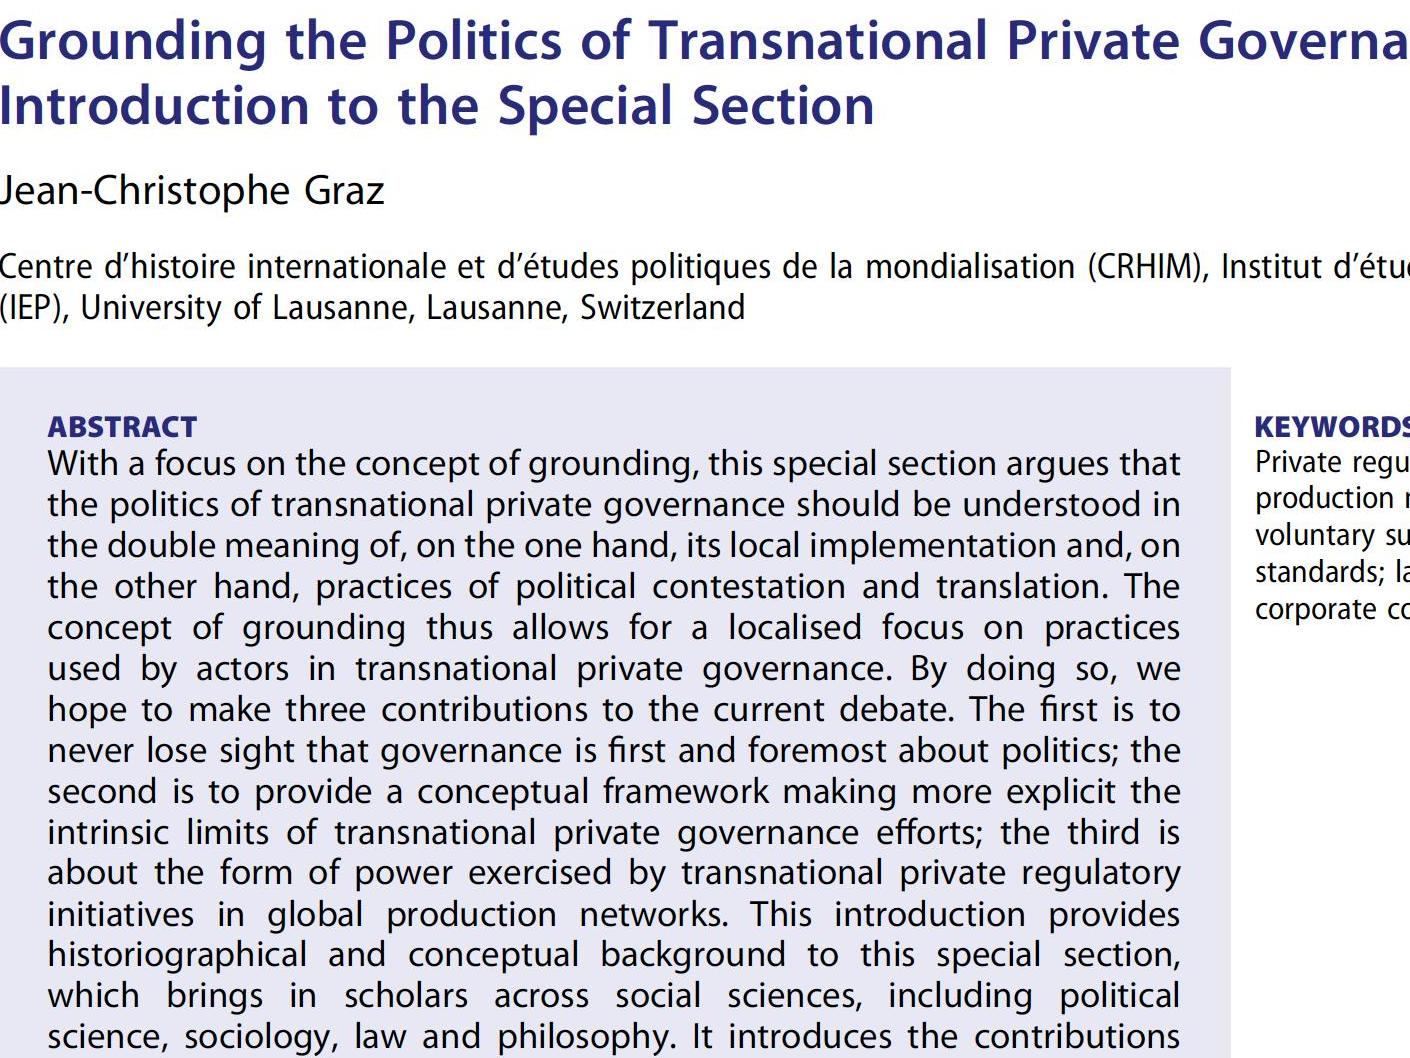 Grounding the Politics of Transnational Private Governance